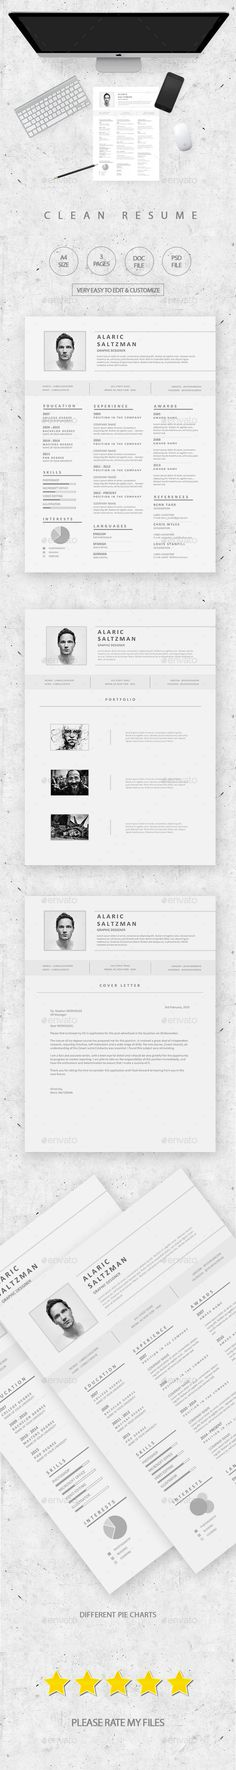 Resume Simple resume, Simple resume template and Design resume - a simple resume